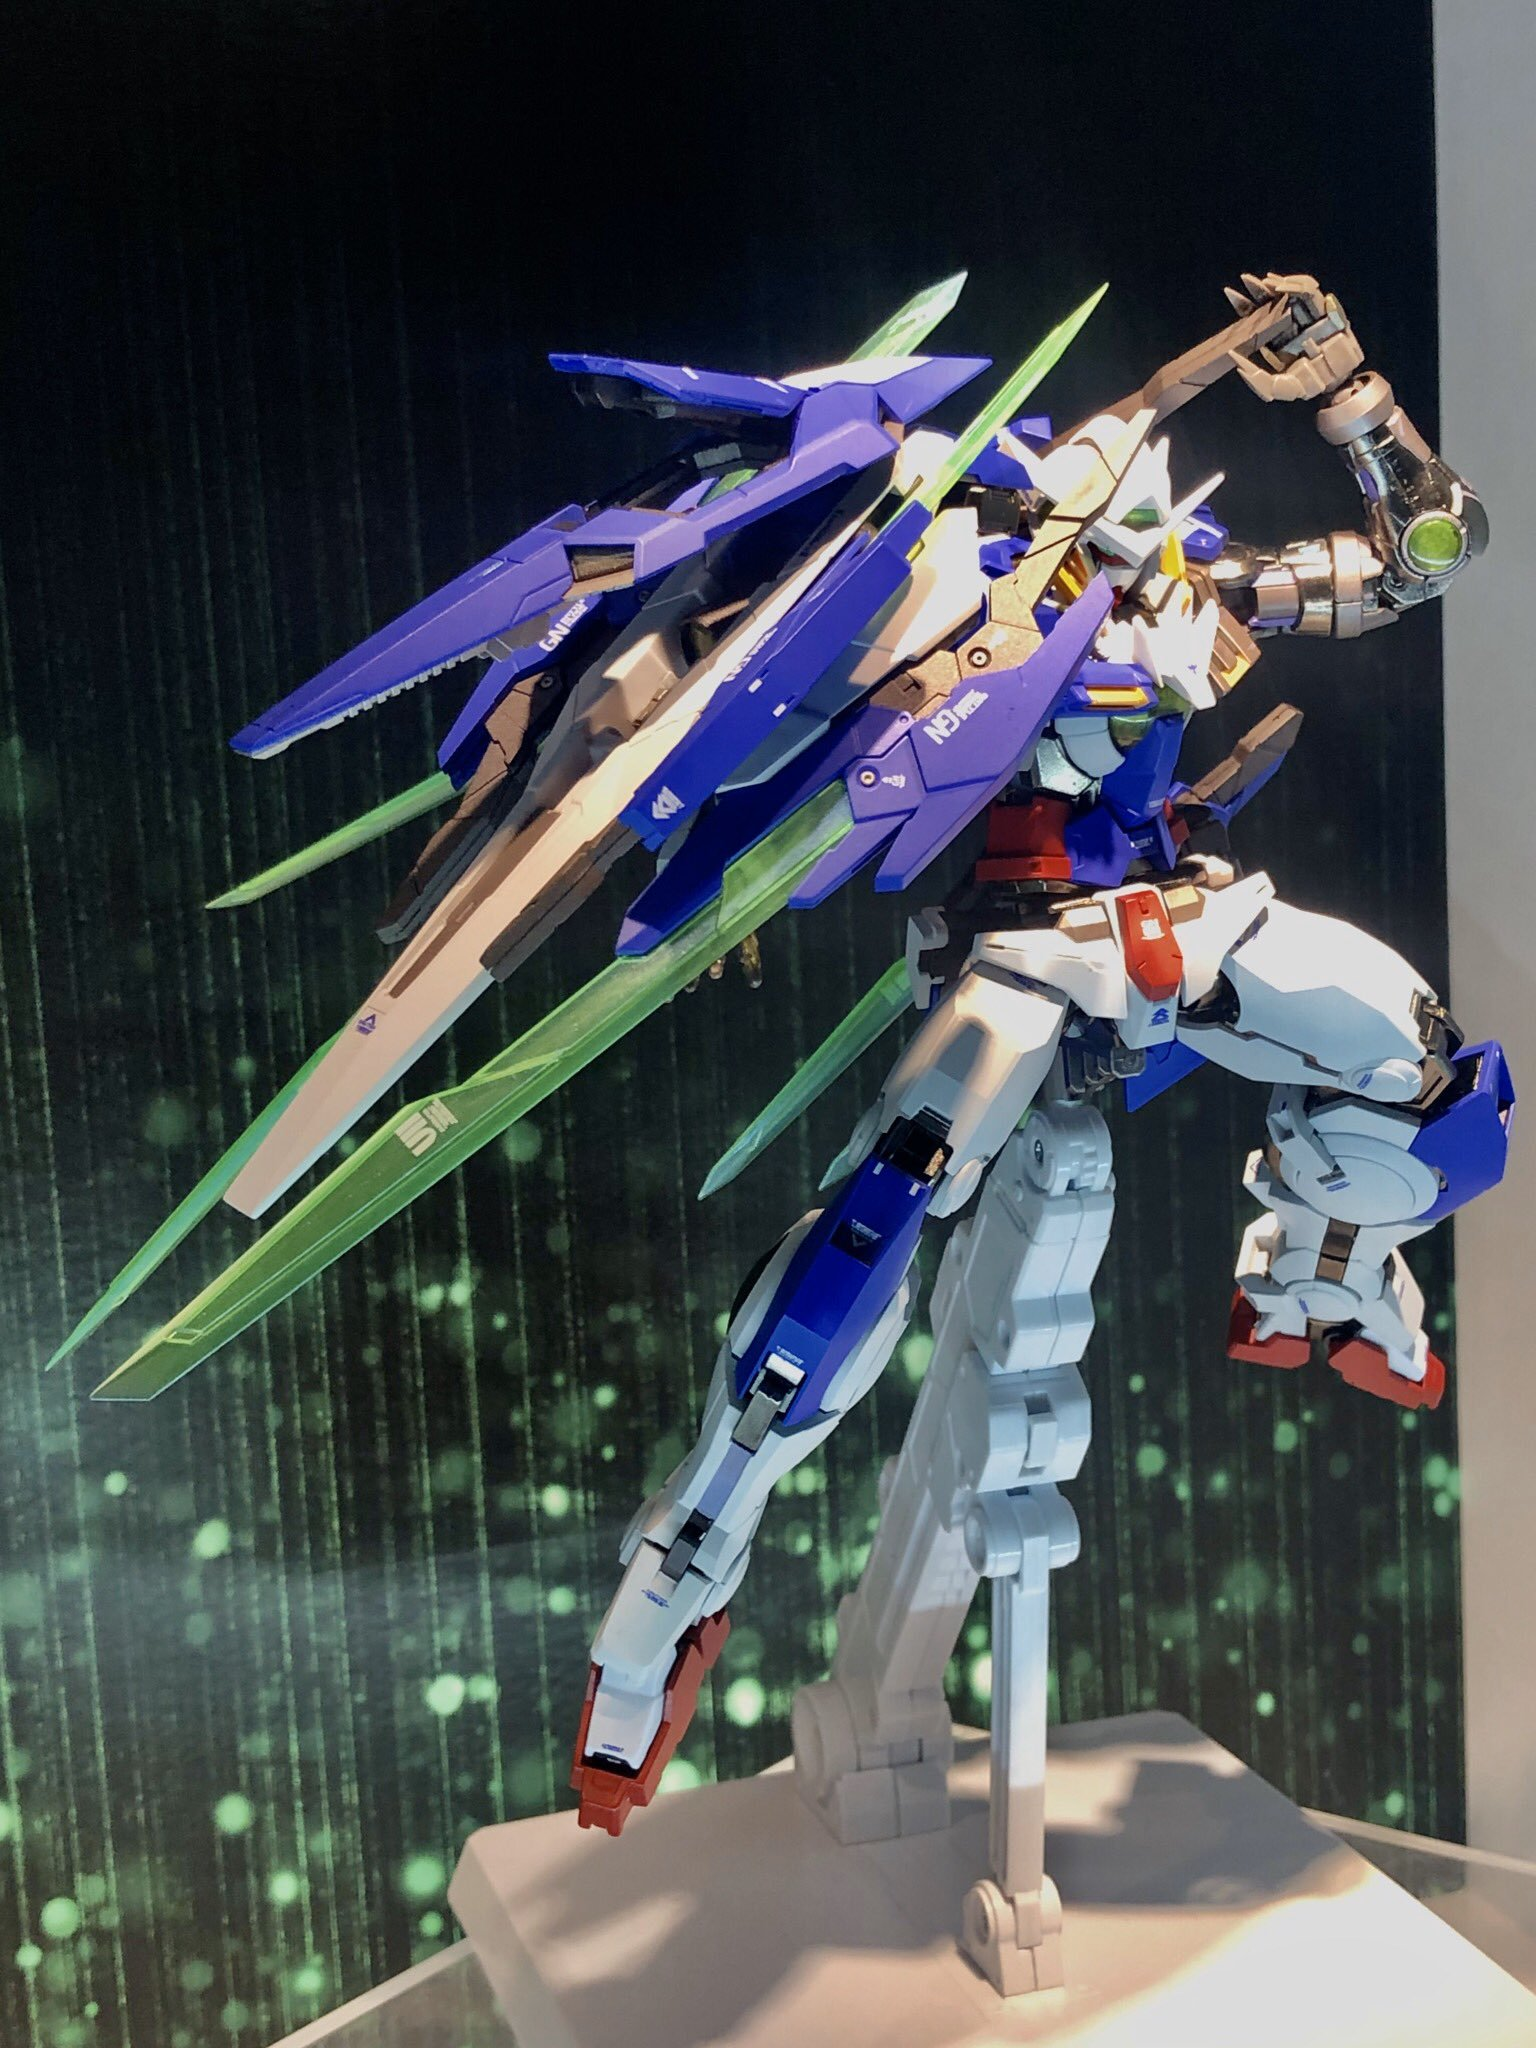 METAL BUILD Gundam Exia Repair IV (new images by Kanetake on Twitter)